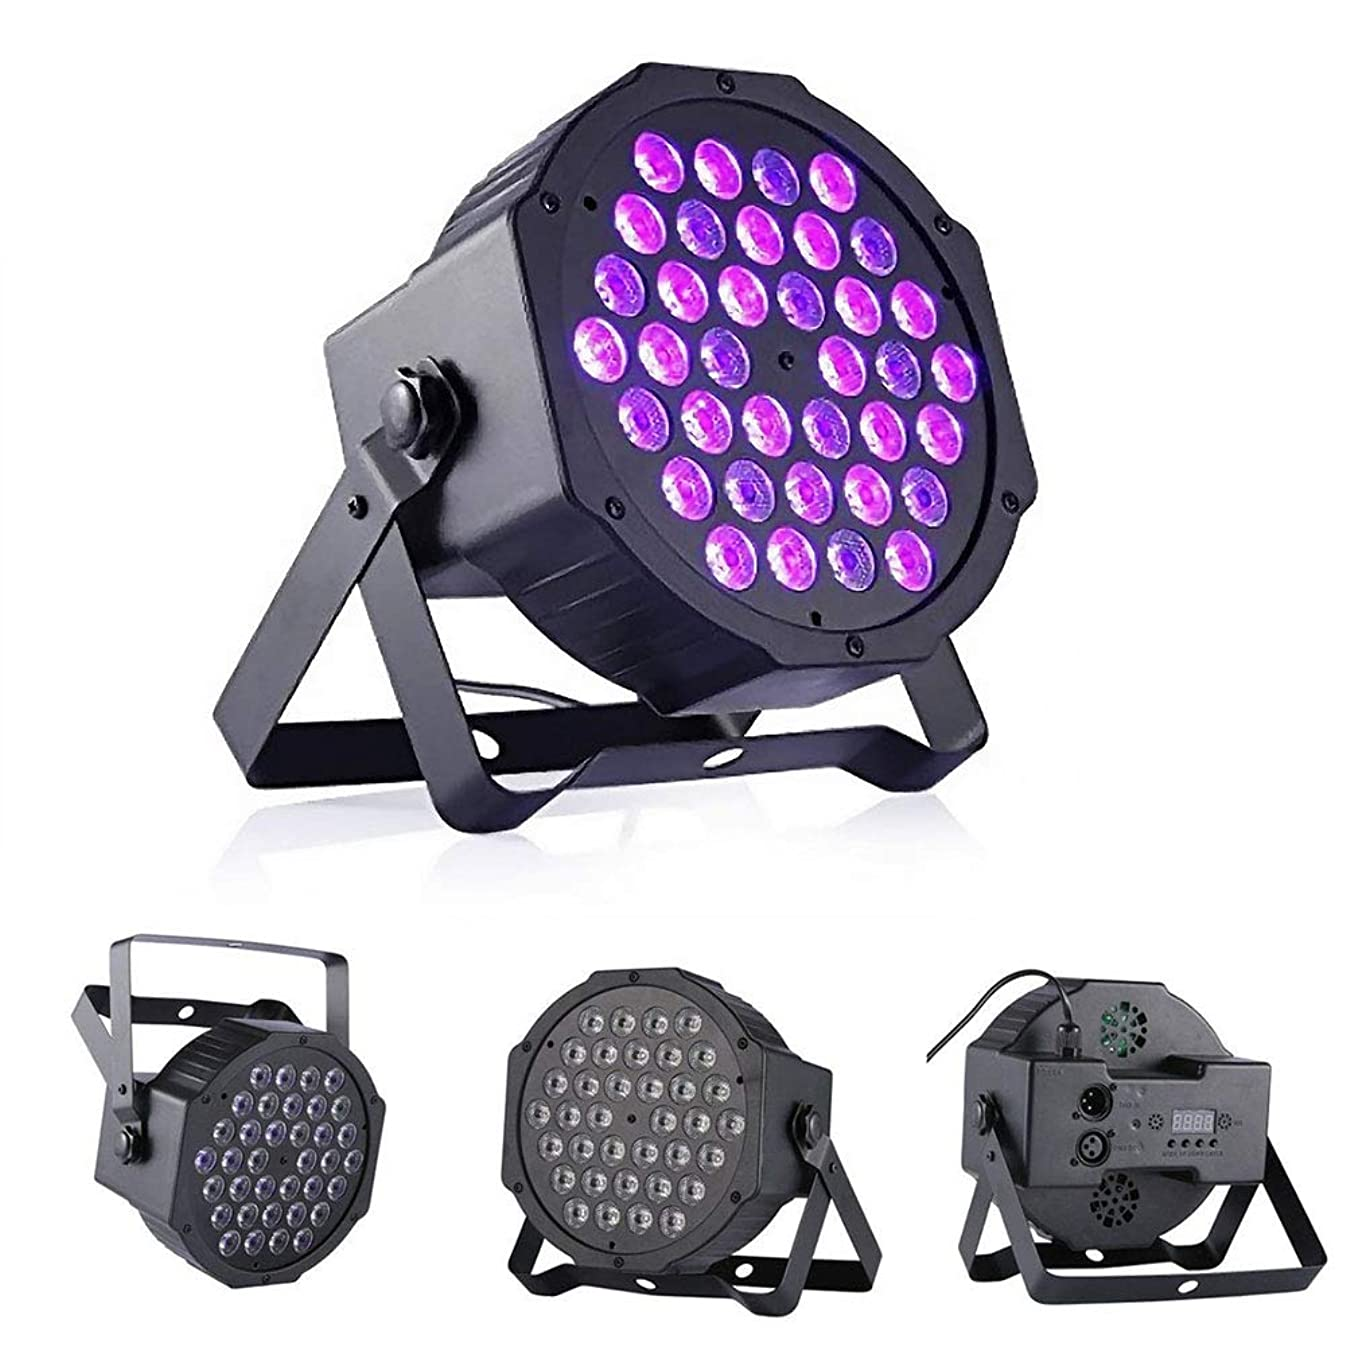 72W Black Lights, DeepDream 36LED UV Blacklight Stage Spotlight with Remote Control